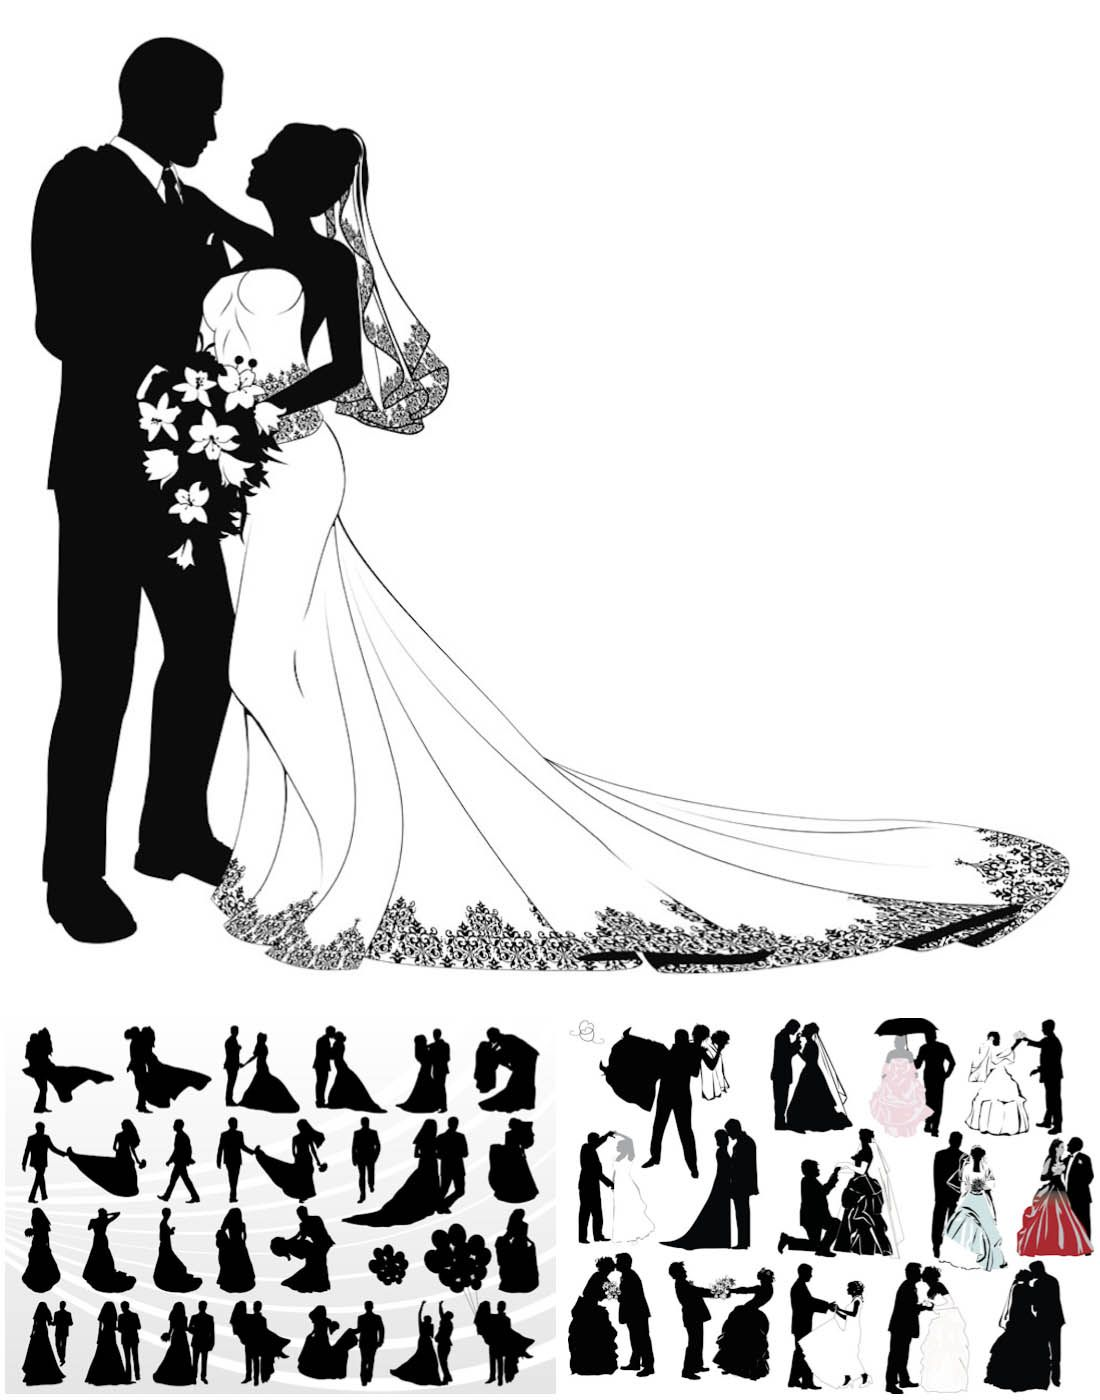 Wedding couple silhouettes in different poses for invitation.